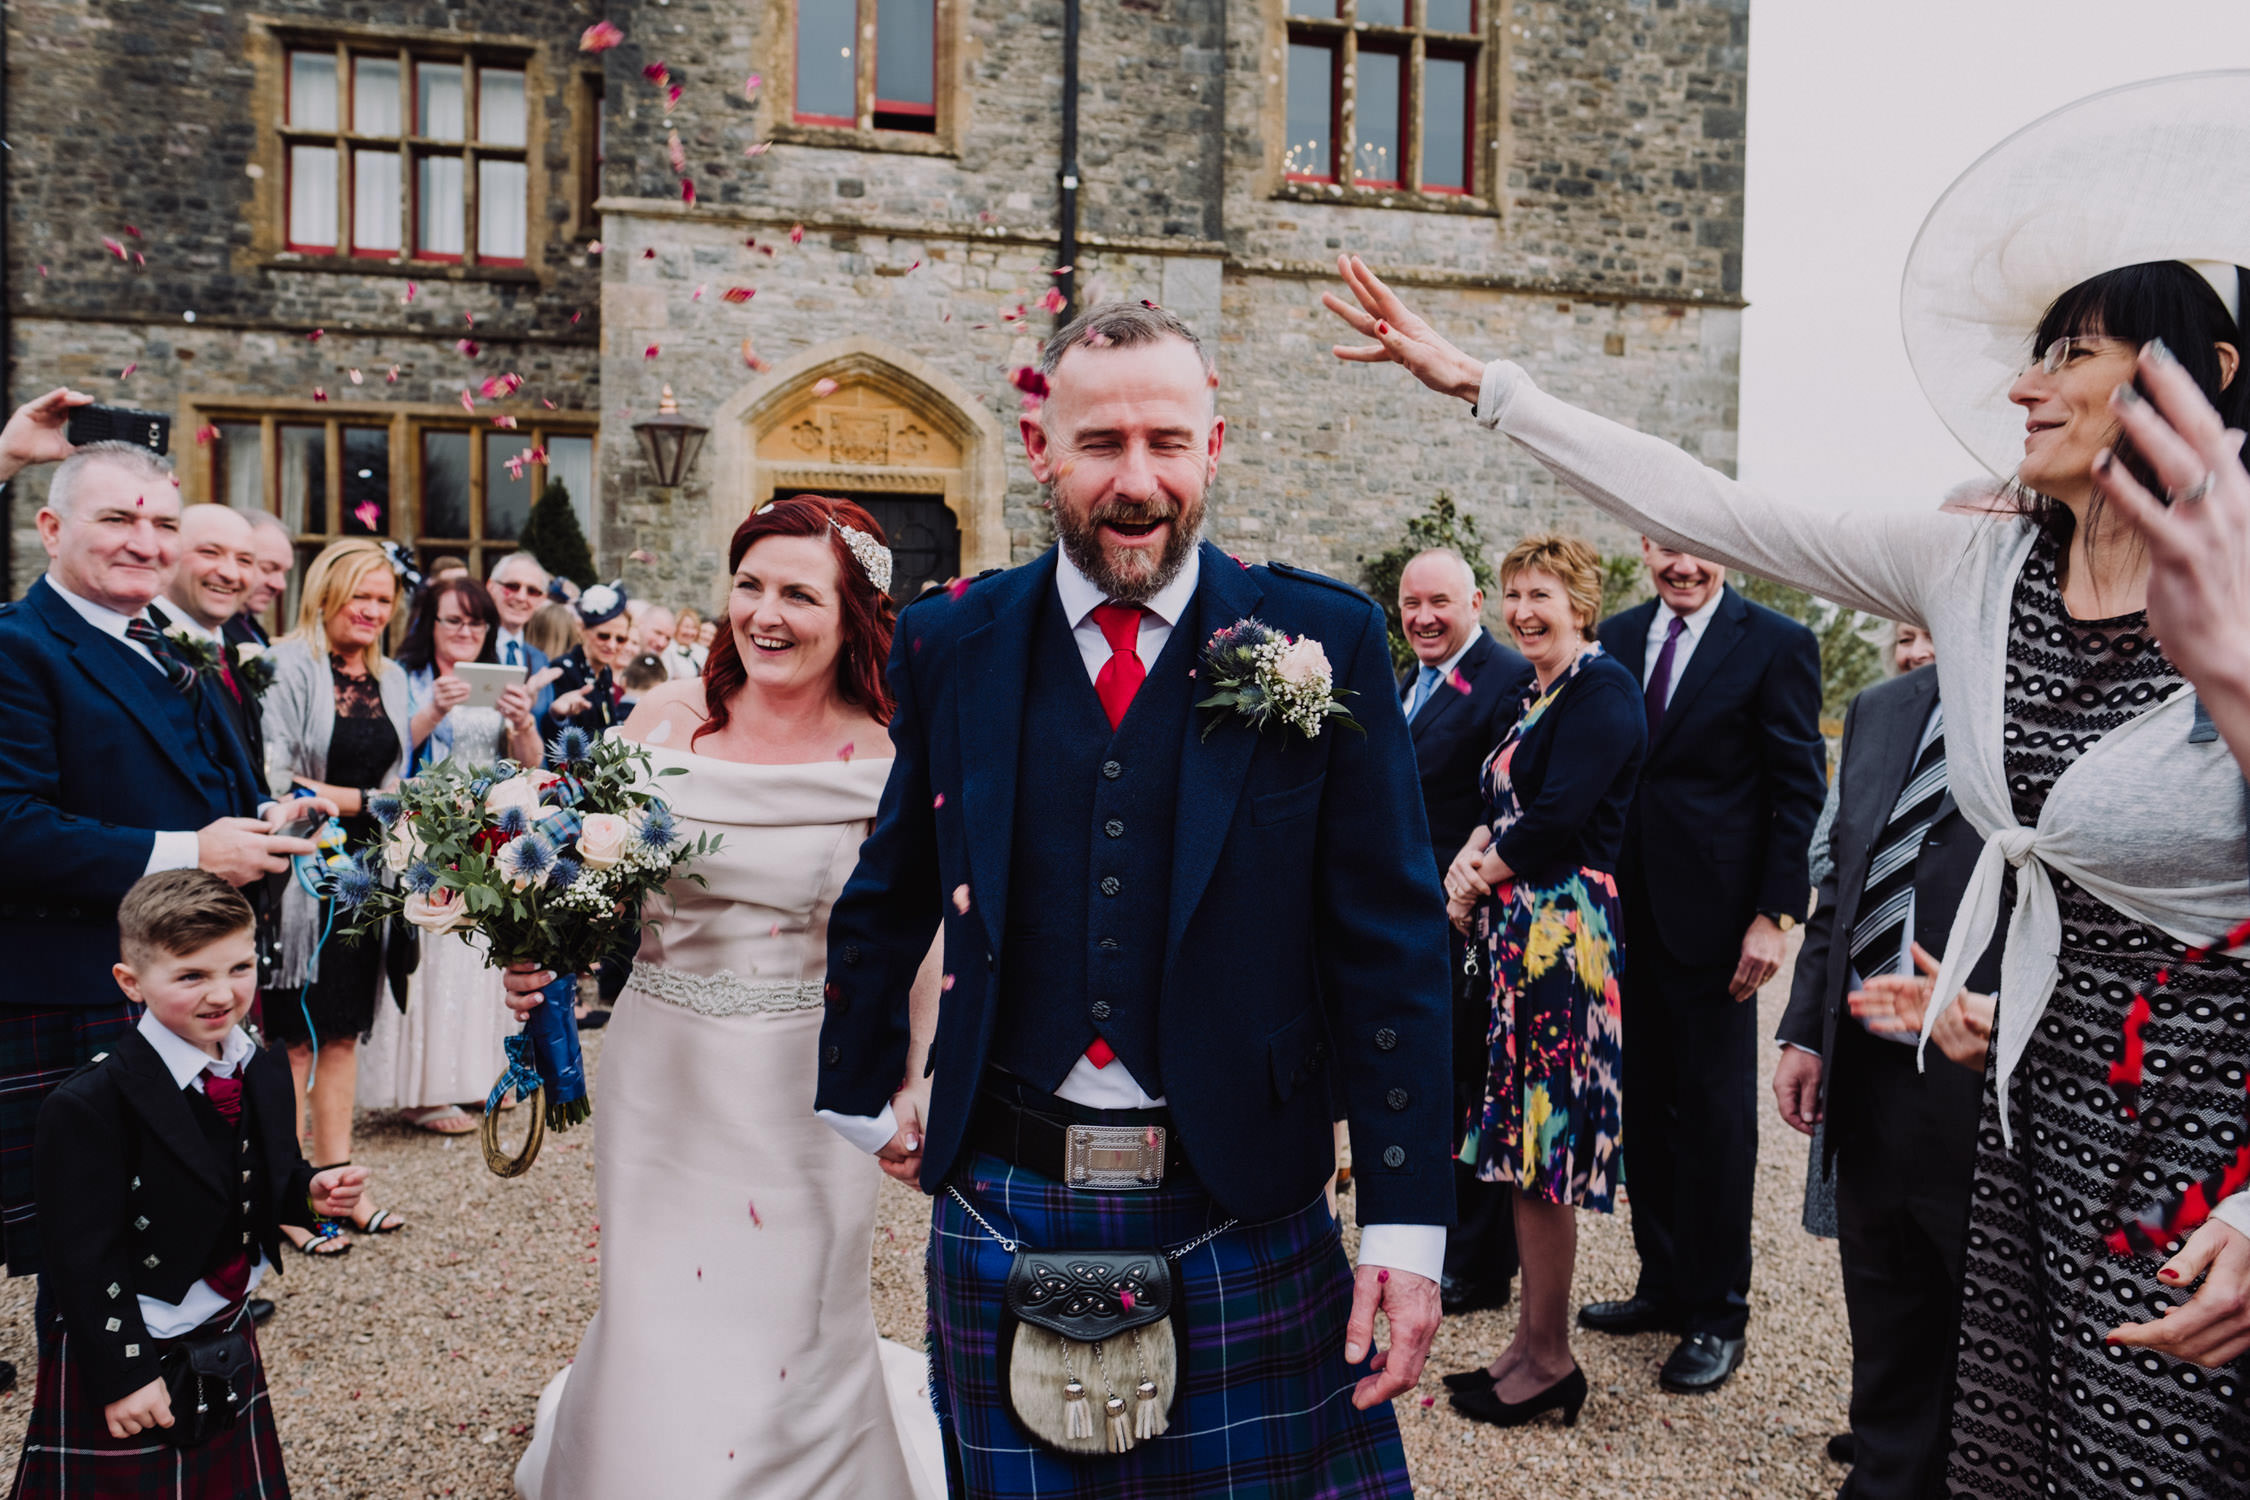 Huntsham court wedding, bride and groom walking through confetti , Devon wedding photographer